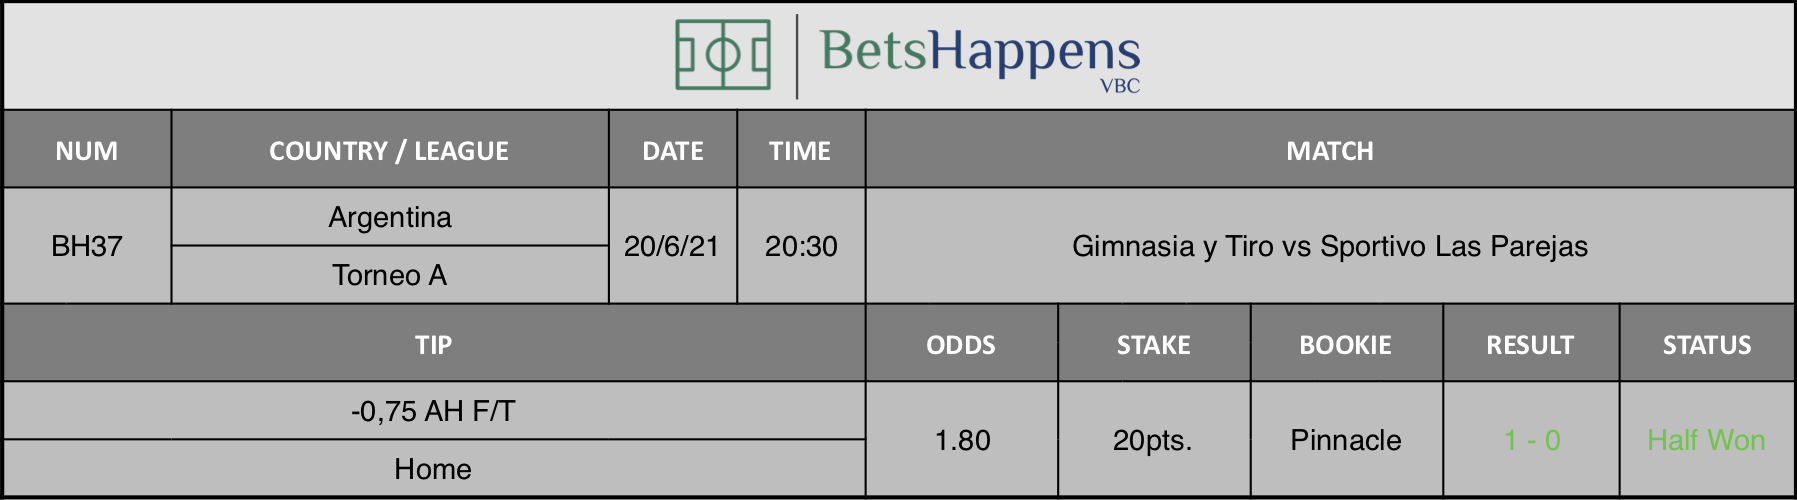 Results of our tip for the Gimnasia y Tiro vs Sportivo Las Parejas match -0,75 AH F/T Home is recommended.